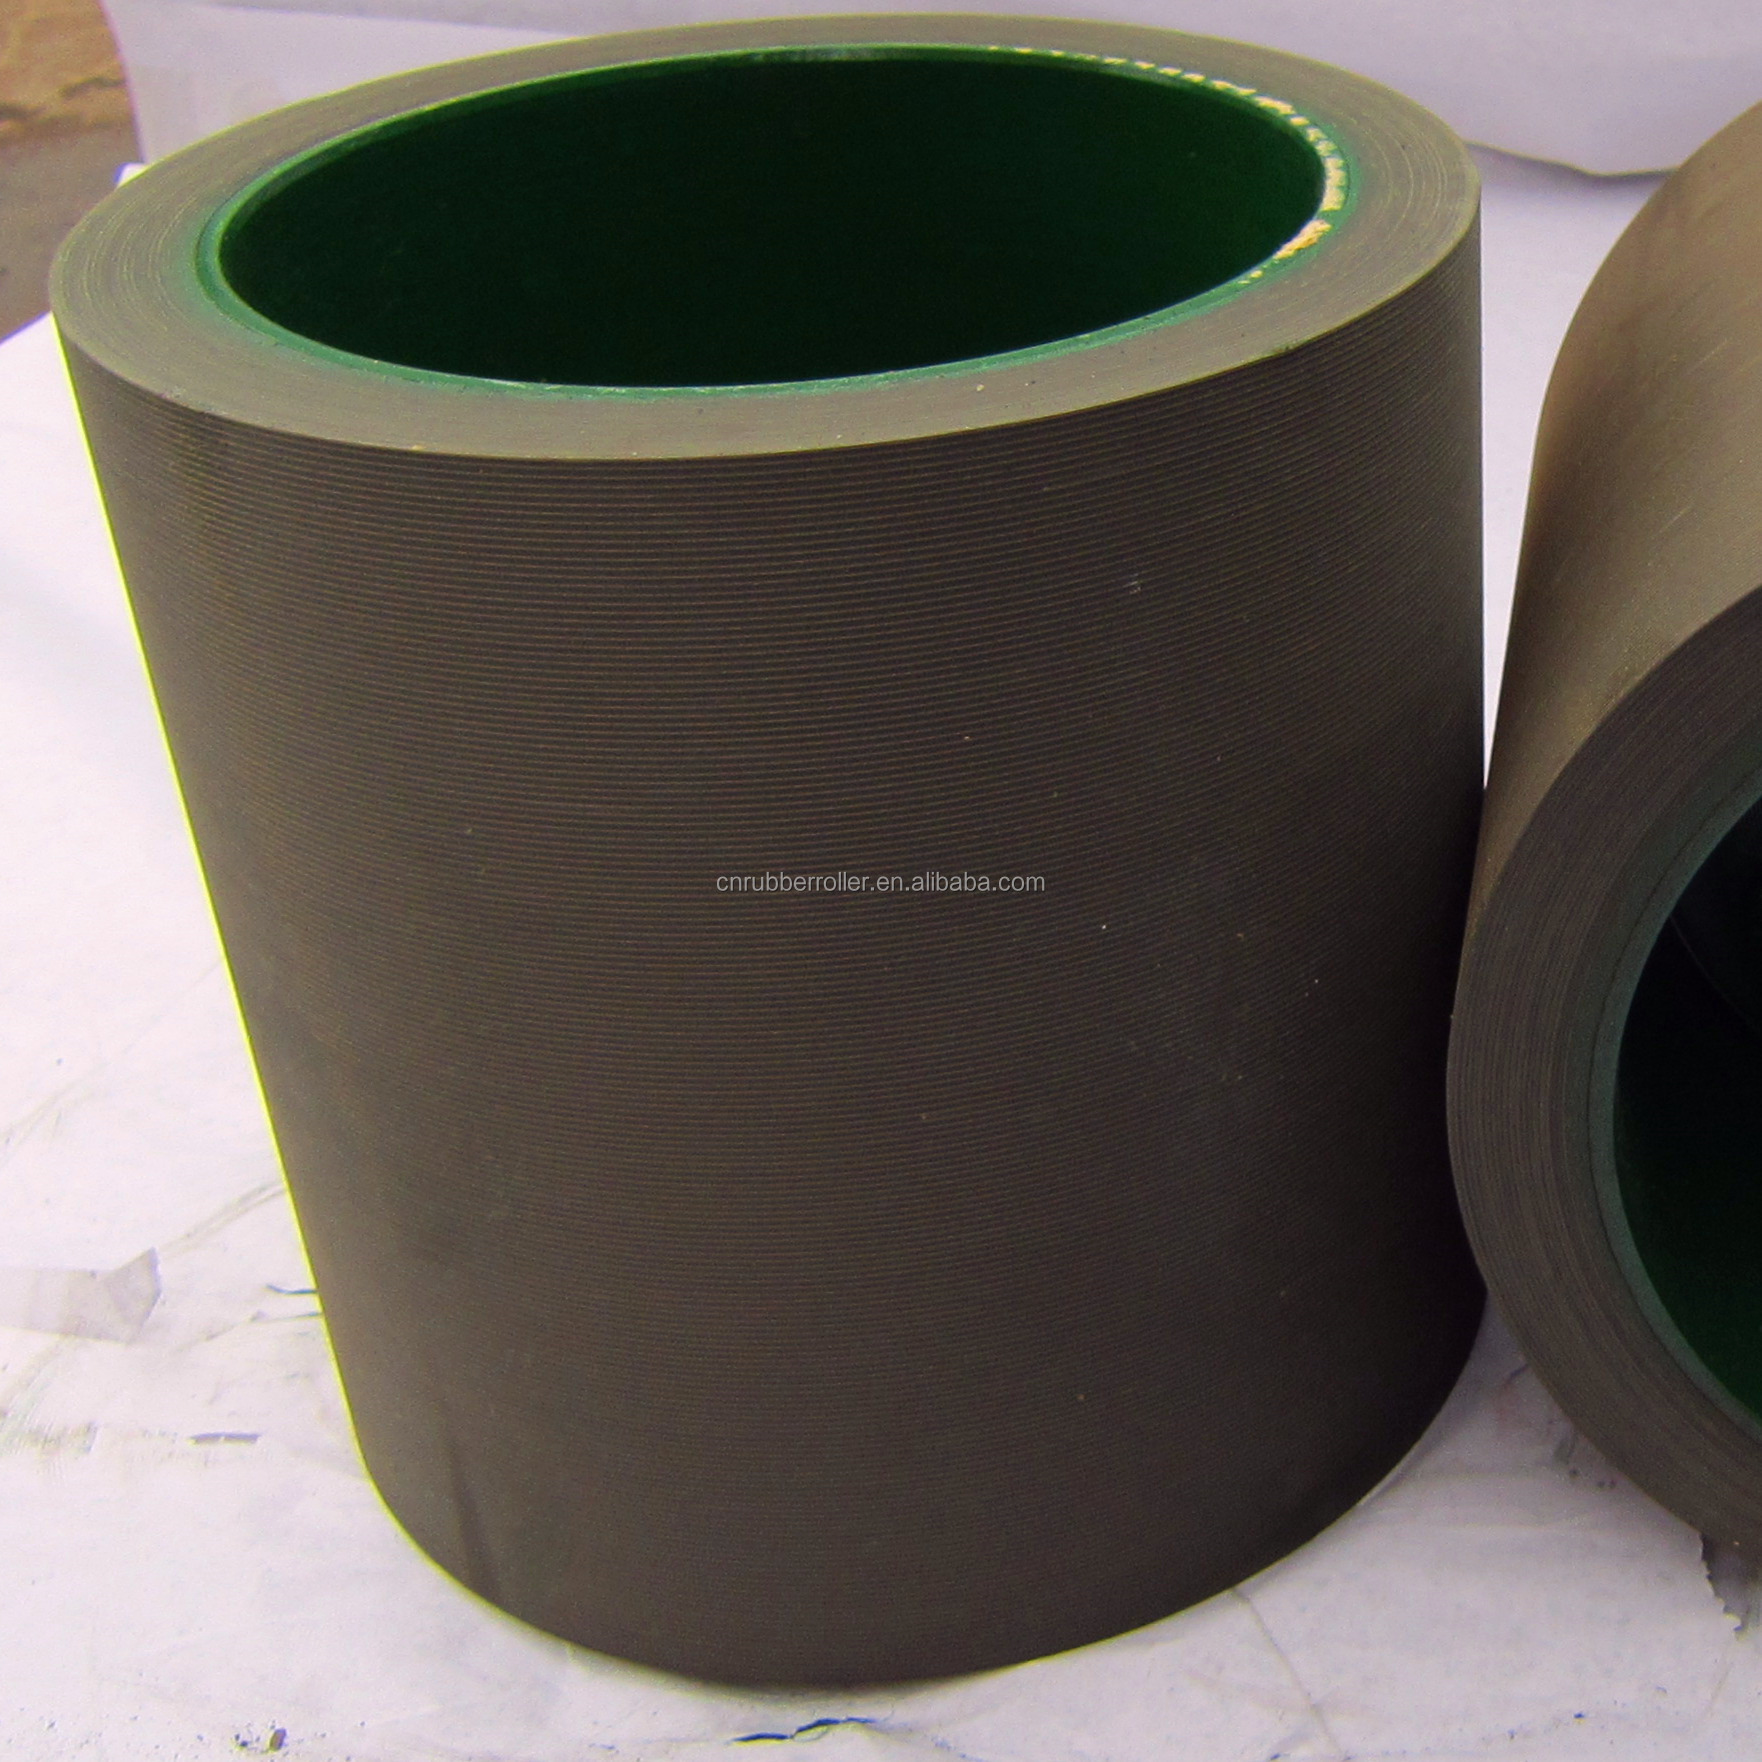 Epdm Rol Rice De Husk Rubber Roll Sbr Nbr Epdm Rubber Sheller Roller Buy Sbr Nbr Epdm Rubber Sheller Roller Rice De Husk Rubber Roll Rubber Roller Product On